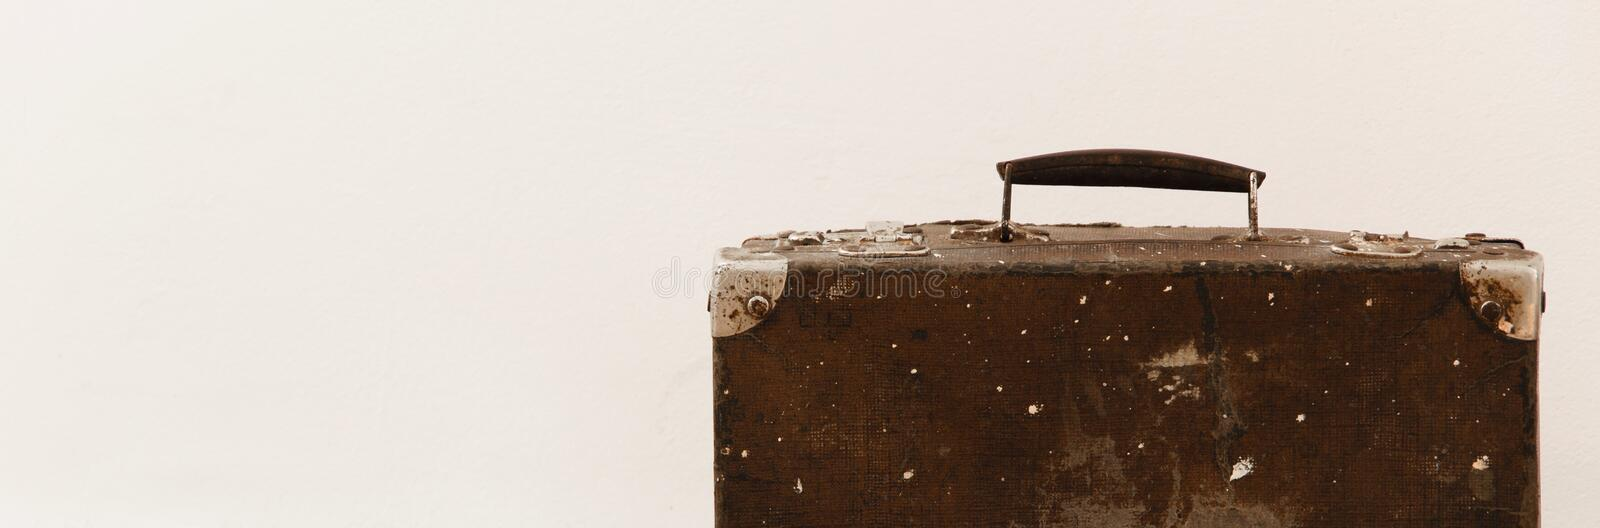 Crop view of isolated vintage suitcase on white background stock image